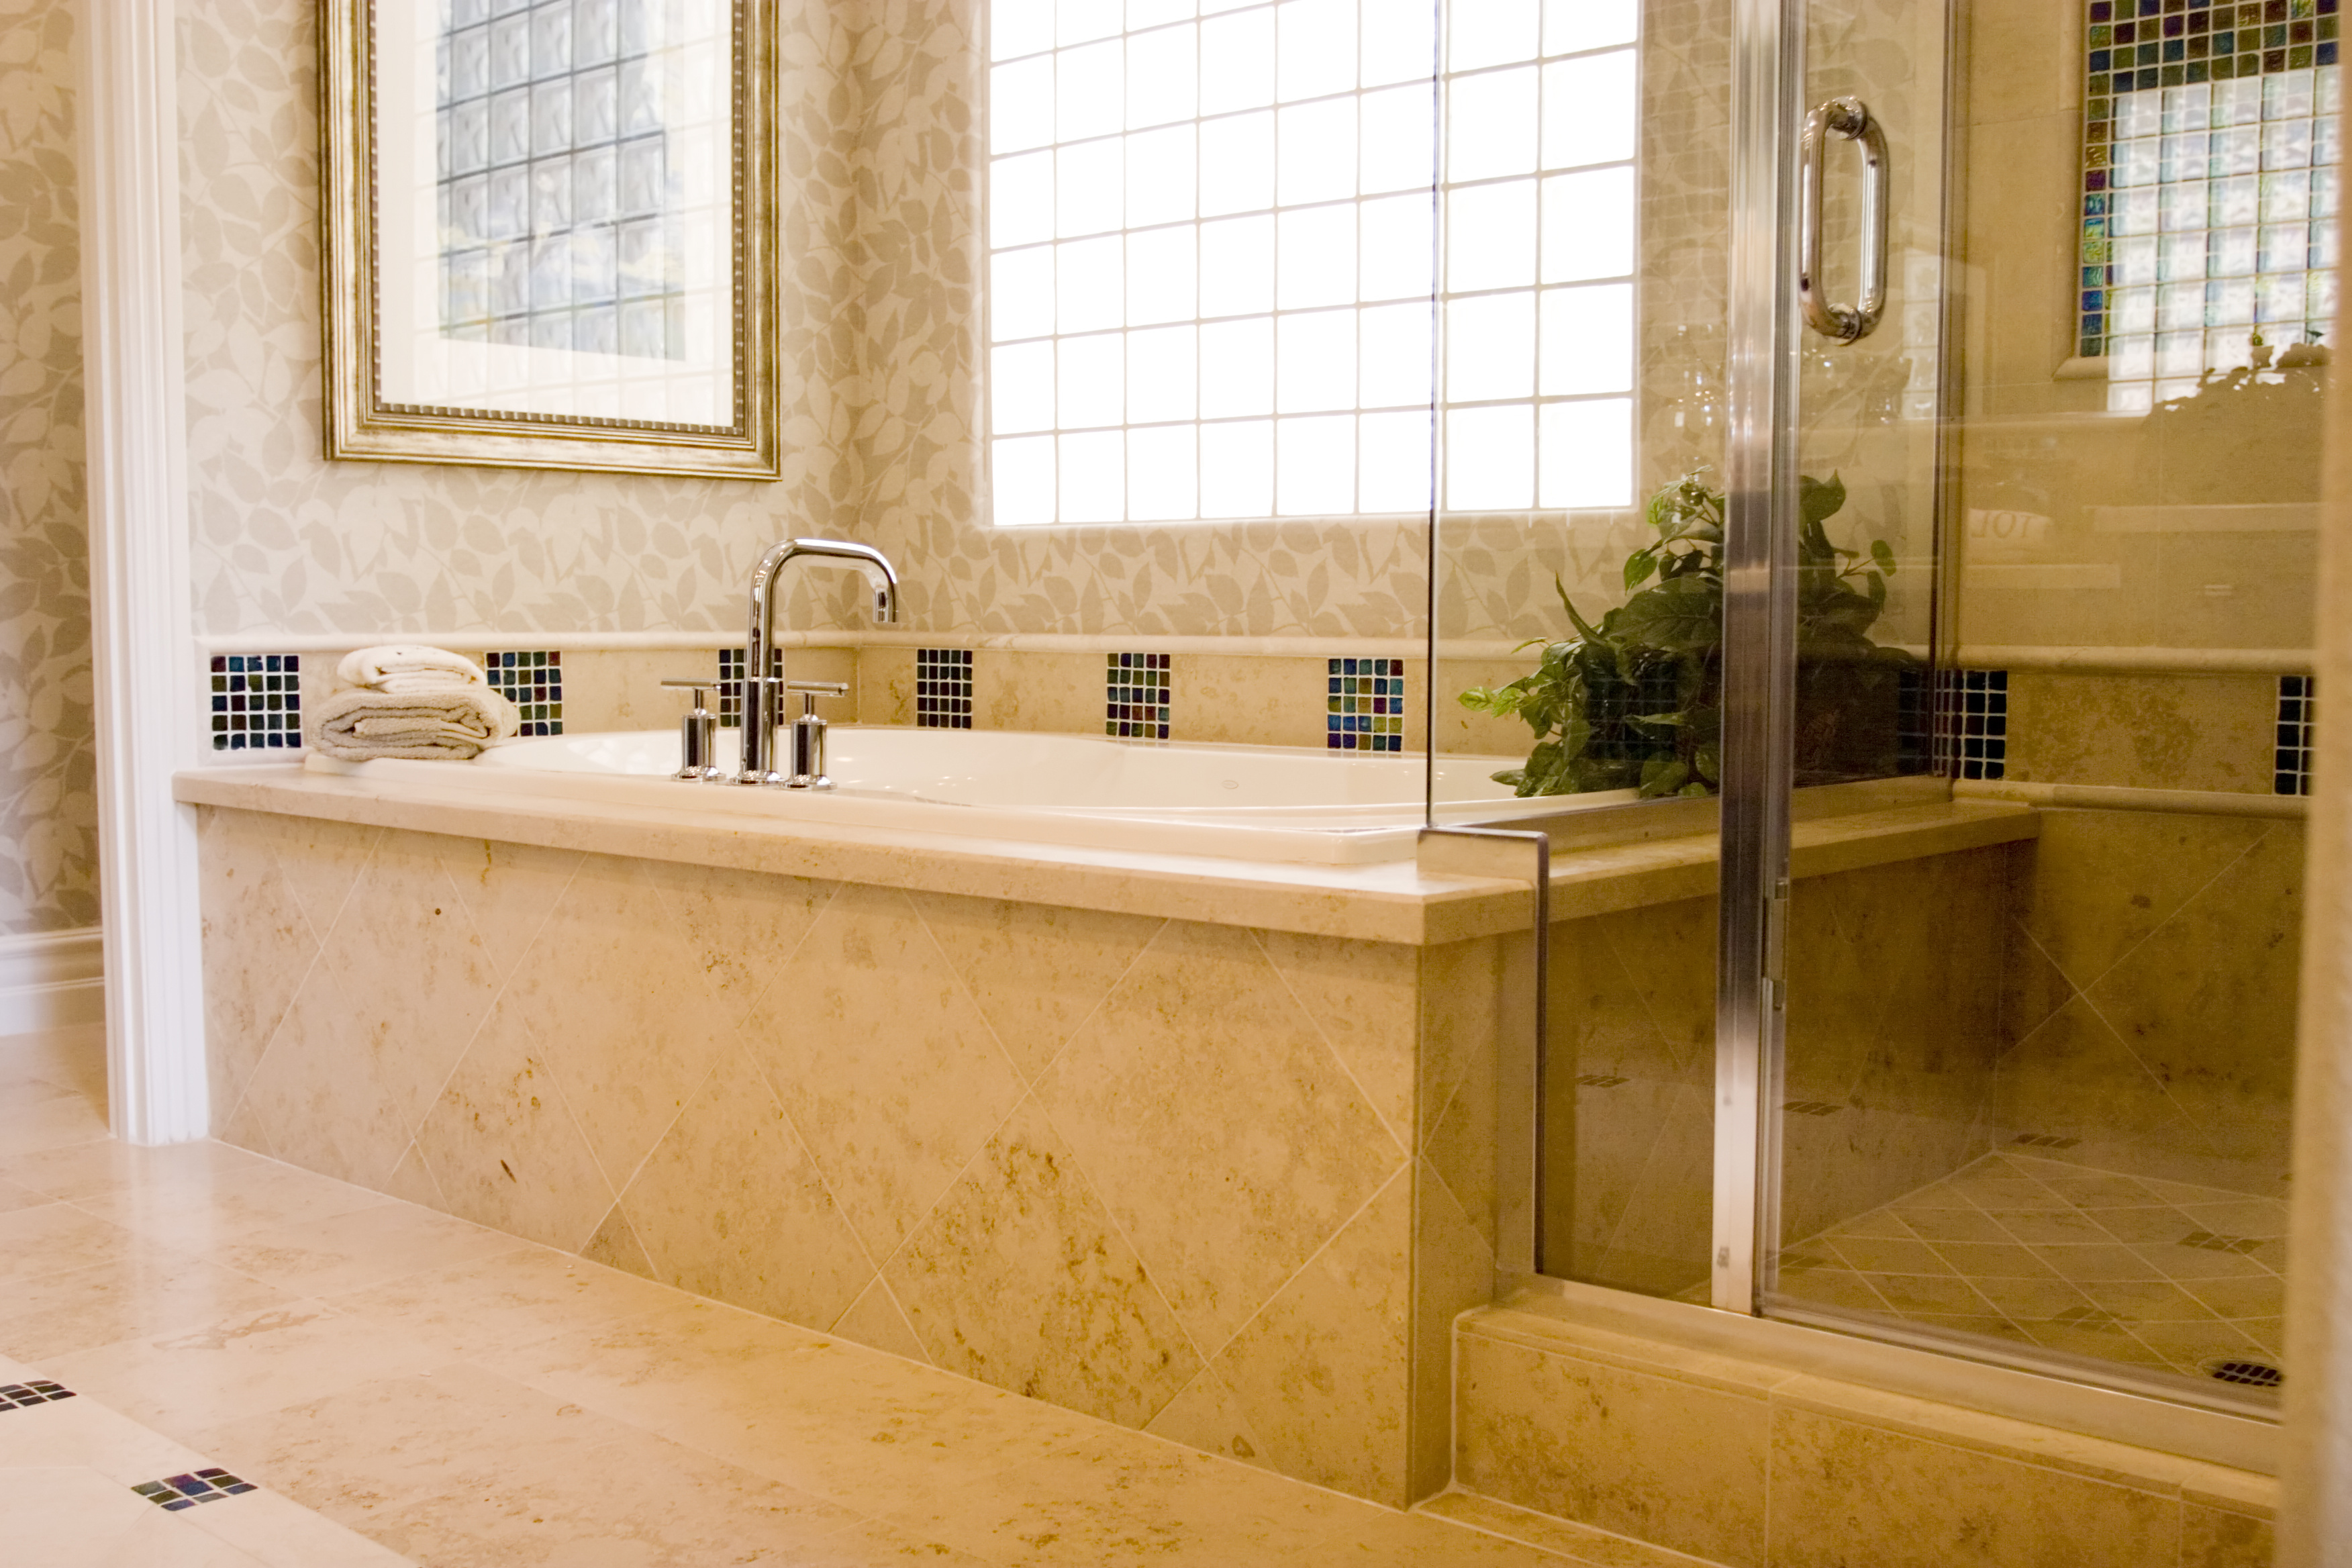 Bathroom Remodeling Salt Lake City tim jacobson construction | salt lake city utah remodeling contractor